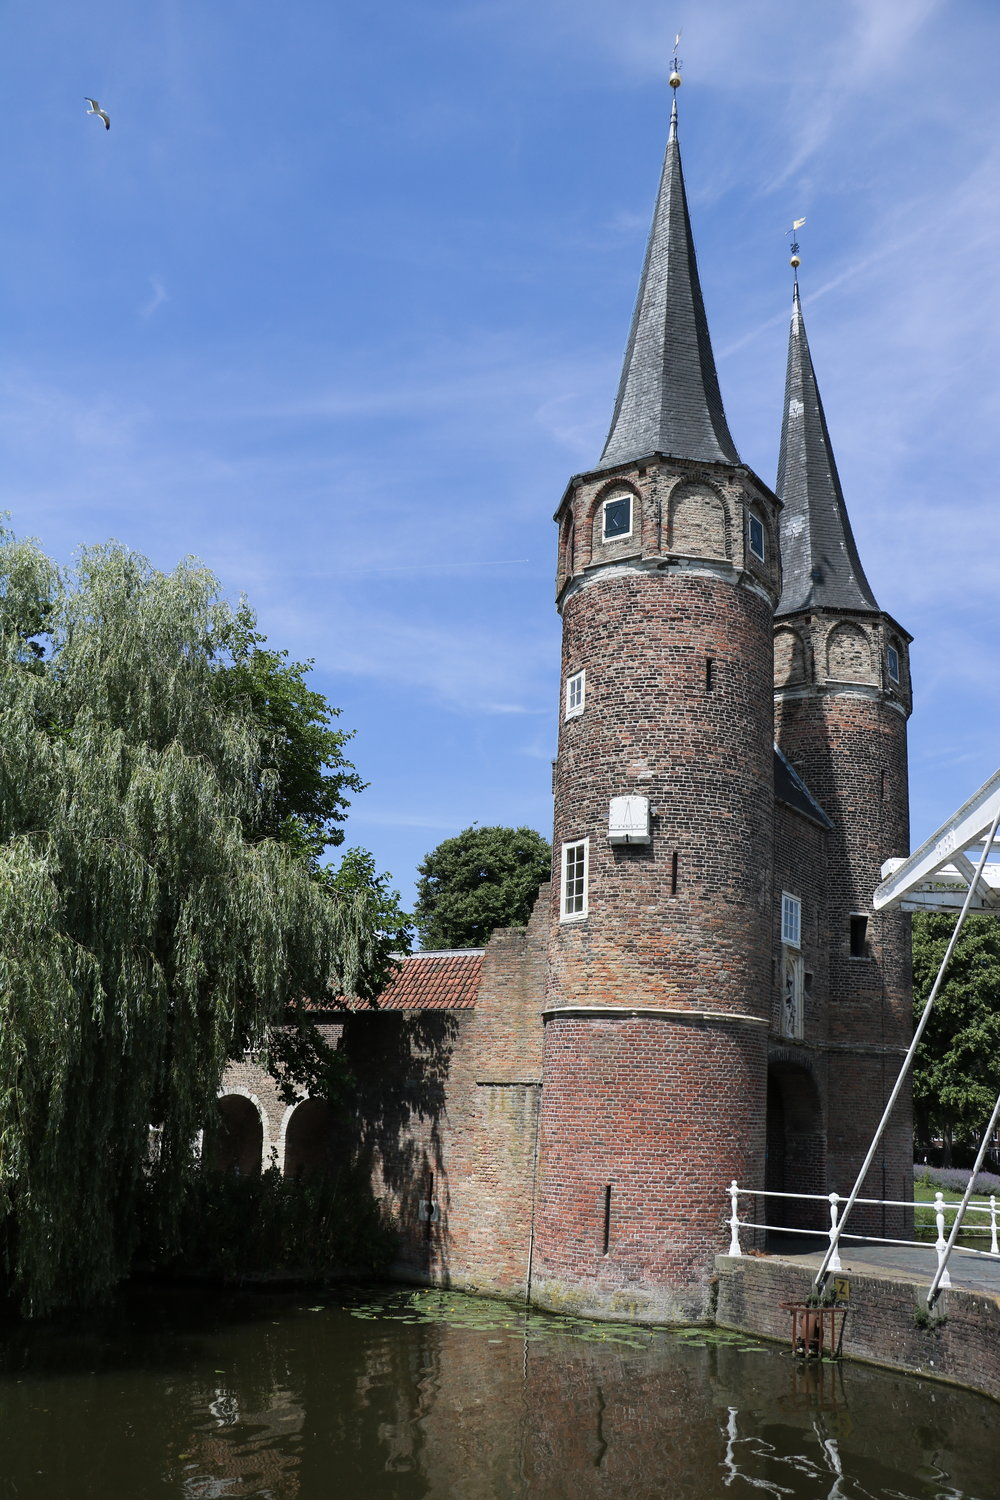 Delft-old-drawbridge-and-towers